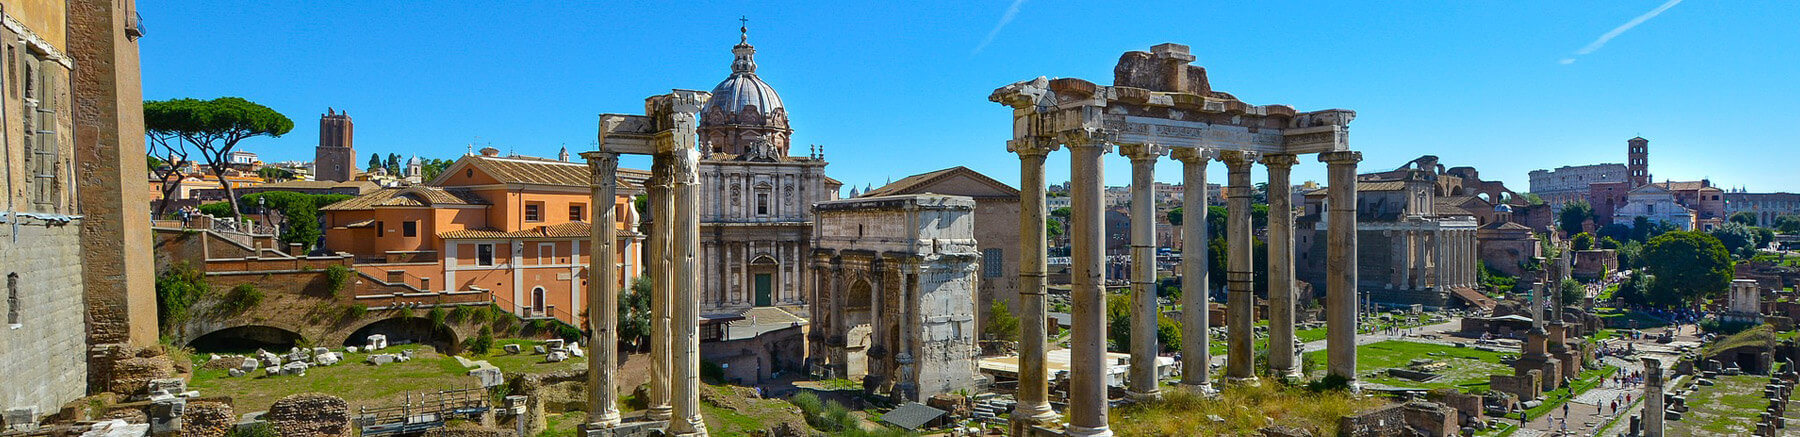 The Roman Forum in Rome featuring the ruins of several important ancient government buildings